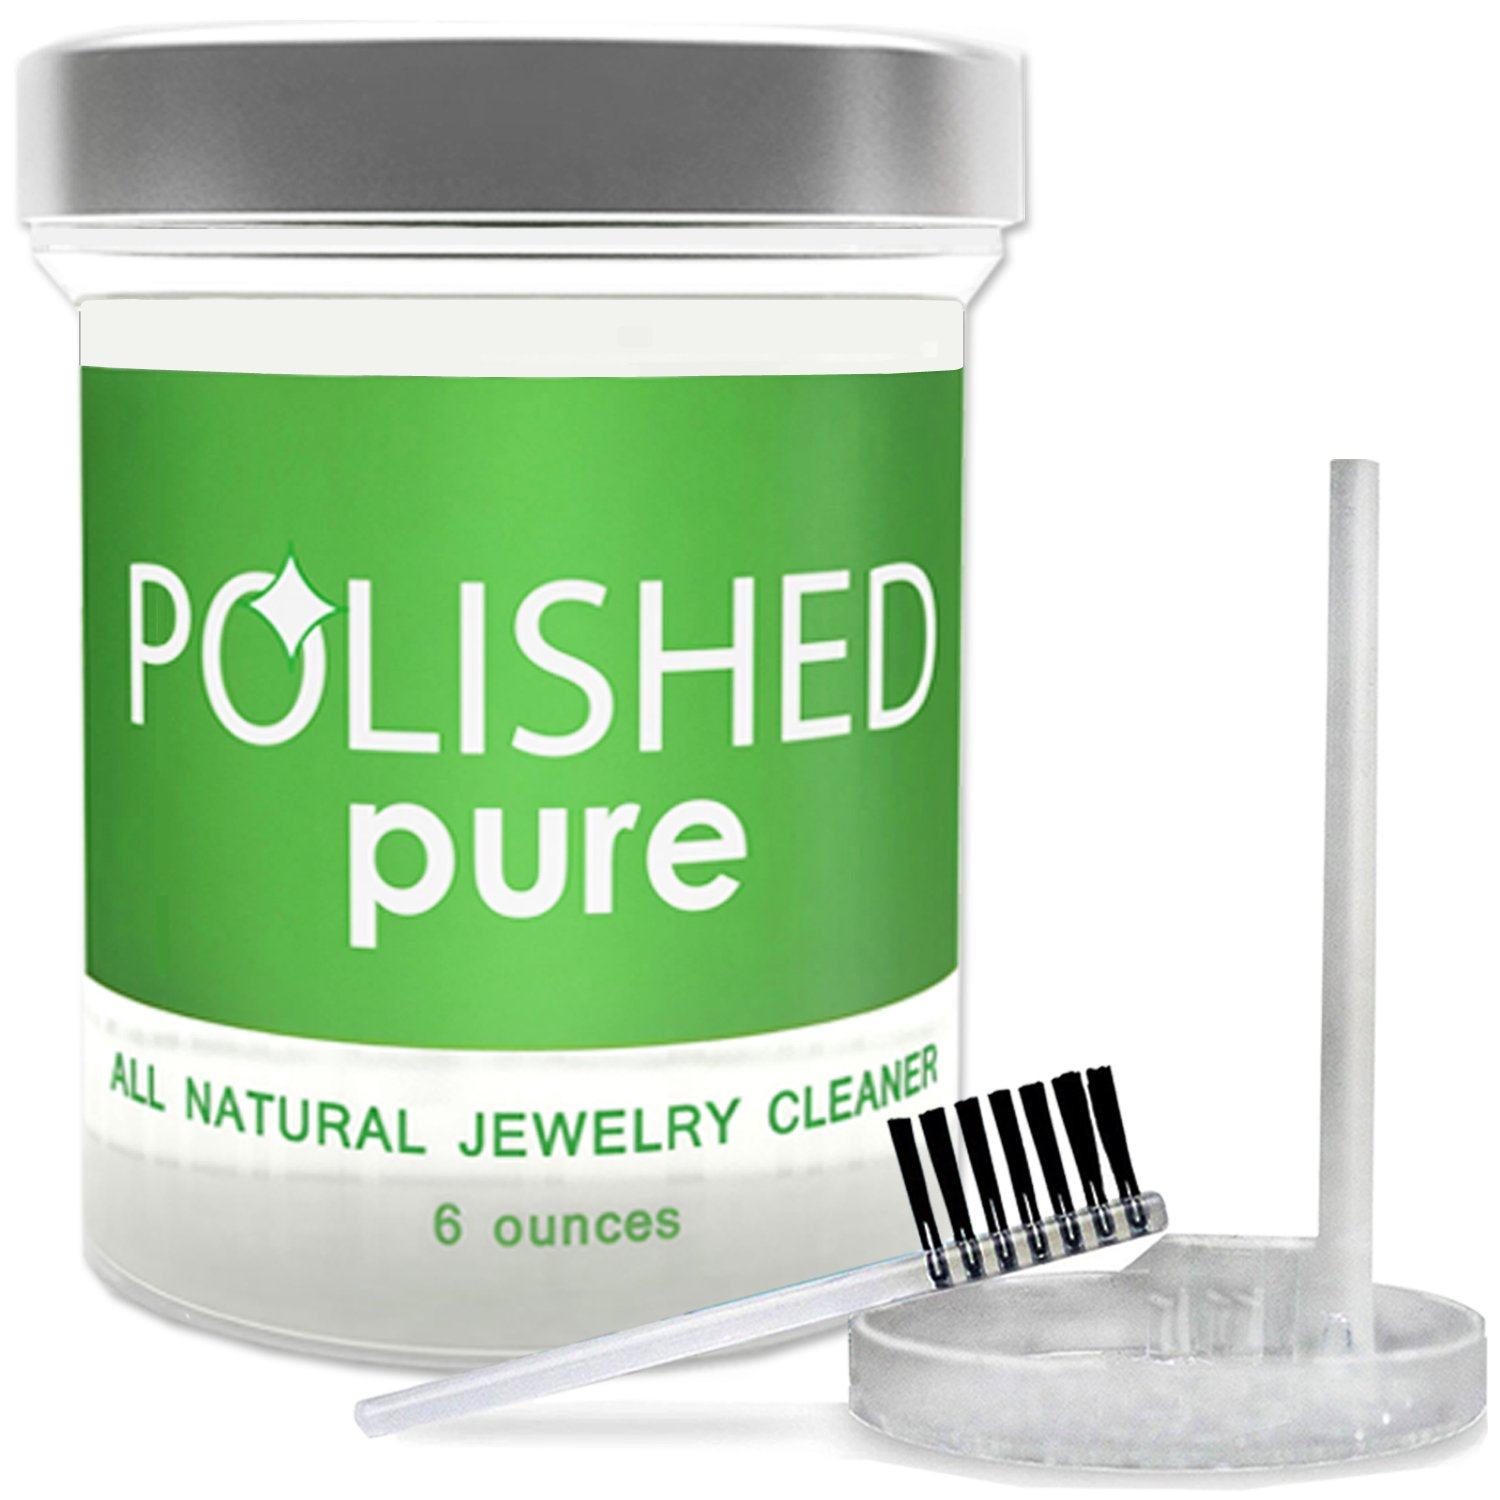 Polished All-Natural Jewelry Cleaner, Professional Clean in 2-Minutes! No Ammonia Jewelry Cleaning Solution, Brush + Tray | Made in USA, Safe on Skin + Diamond Ring, Sapphire + Gold Jewelry Cleaners